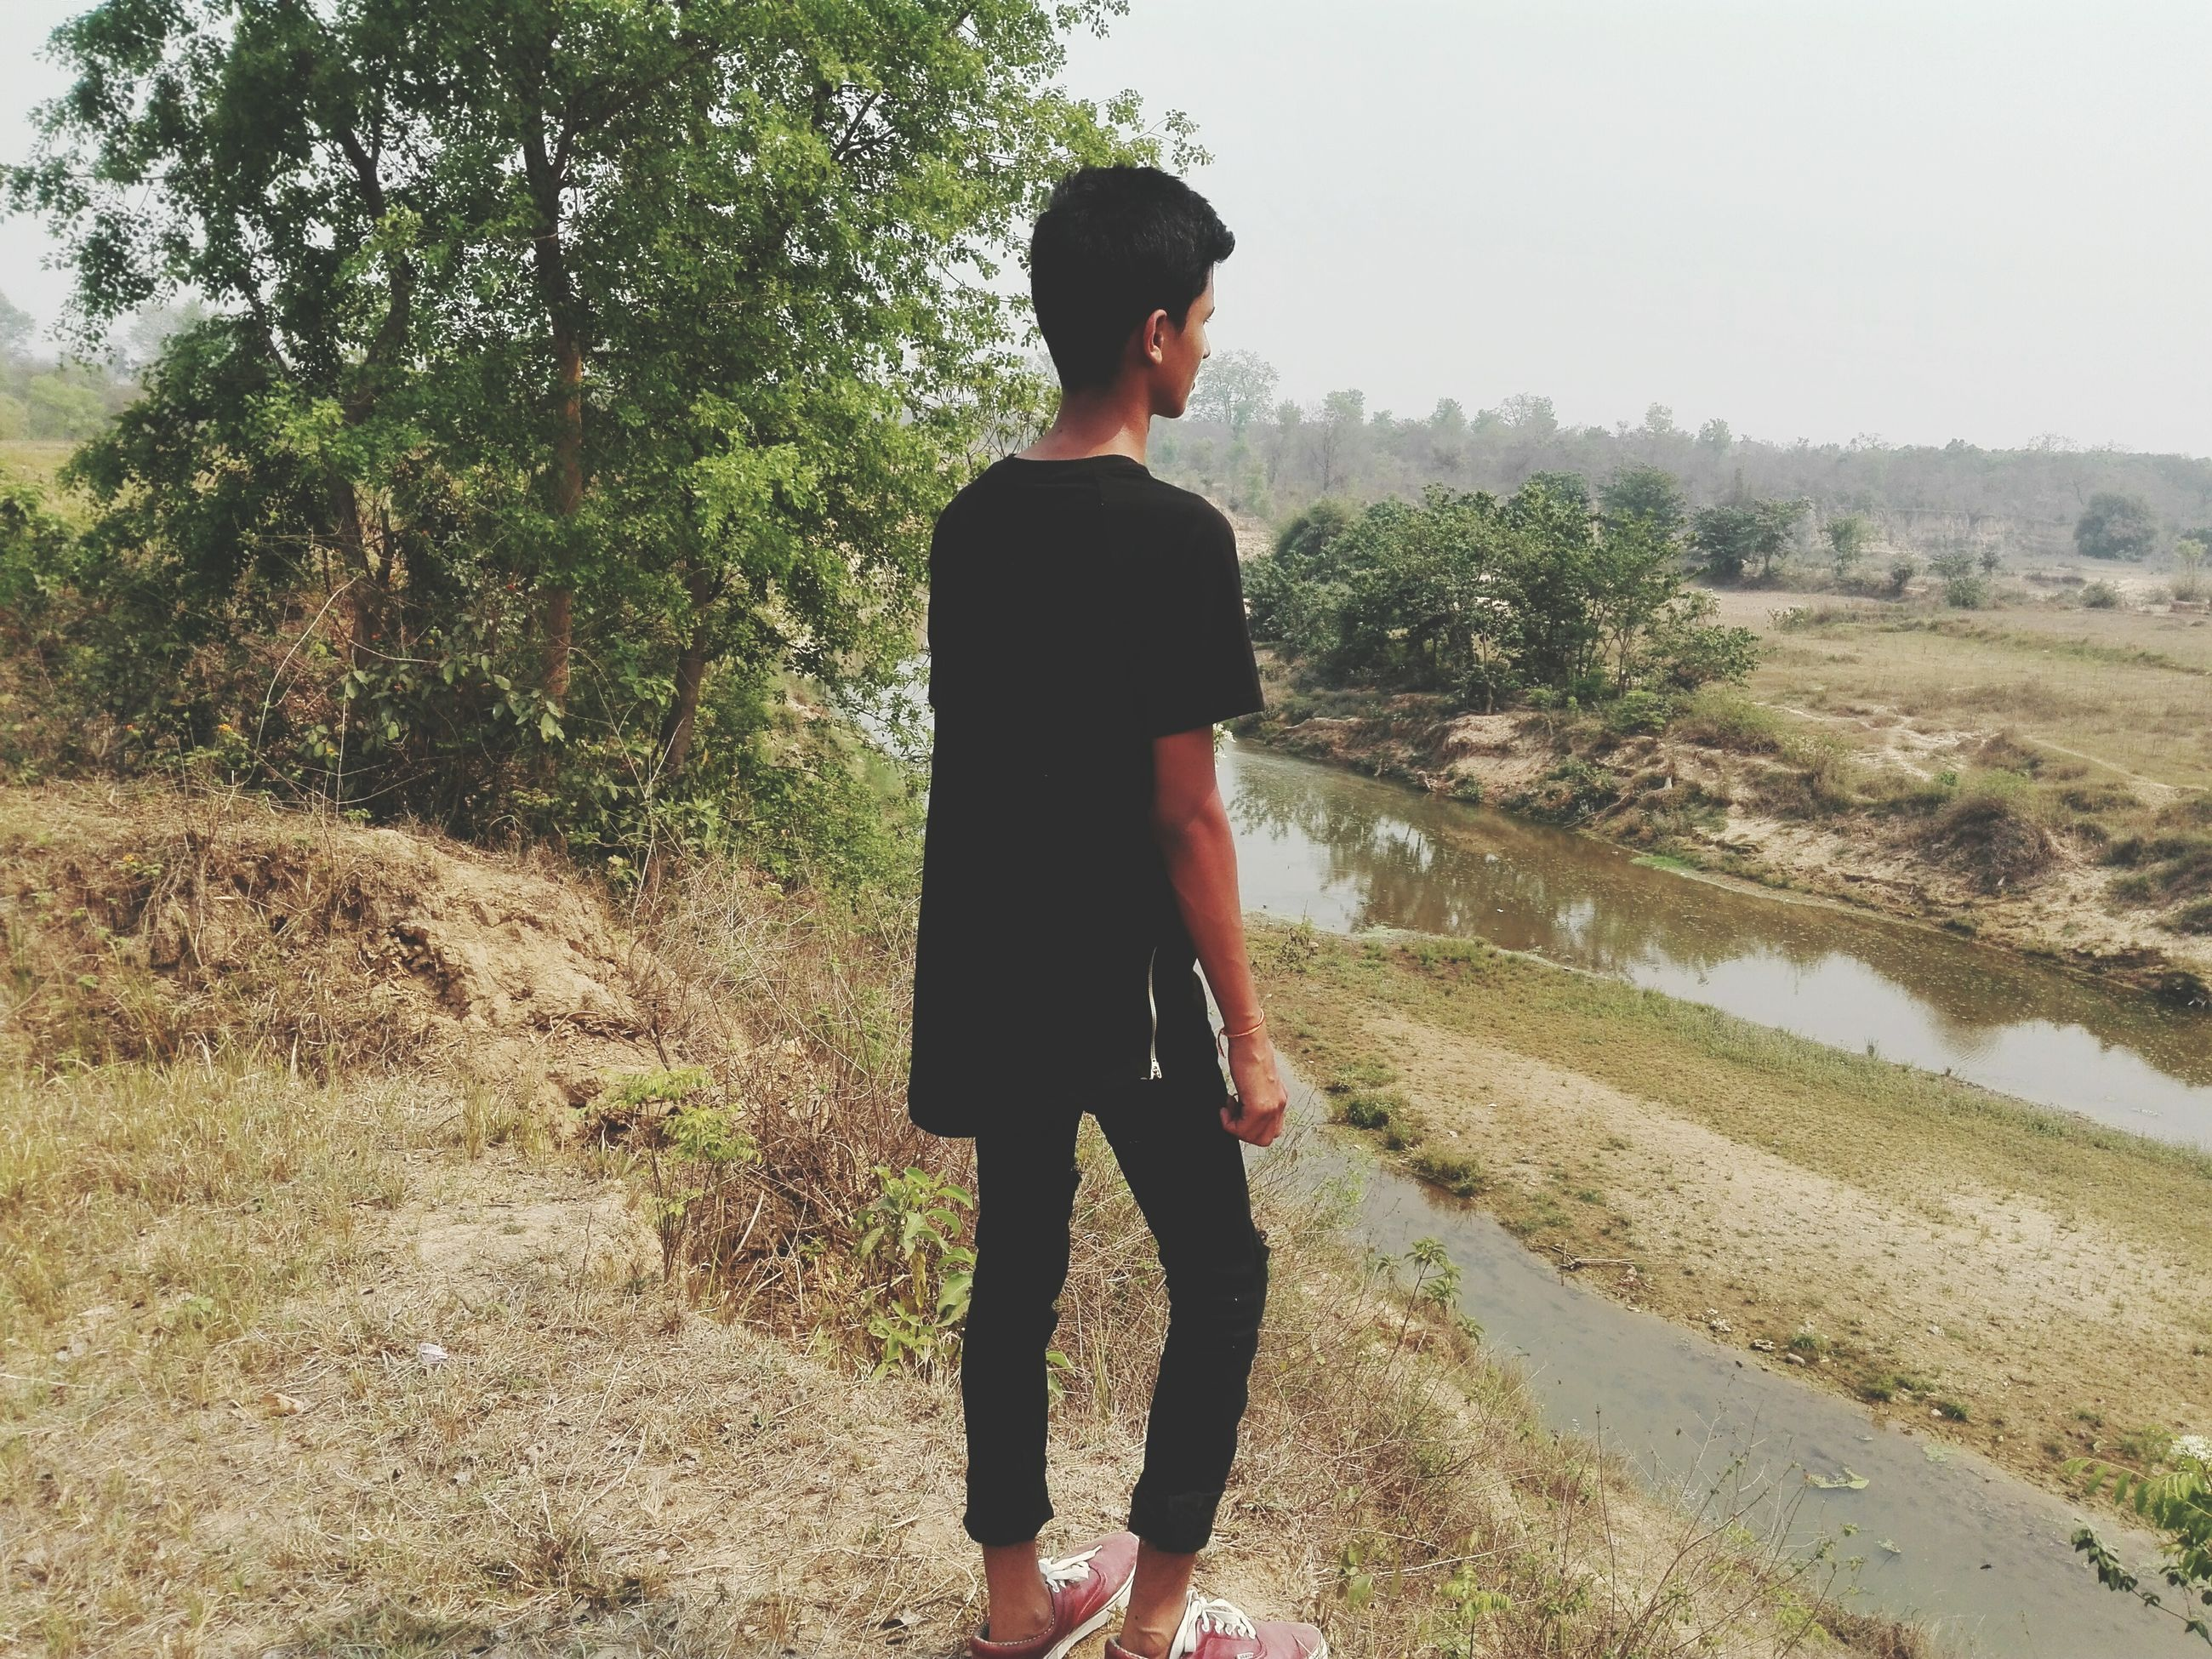 lifestyles, rear view, real people, one person, tree, leisure activity, full length, standing, day, outdoors, nature, growth, childhood, beauty in nature, technology, people